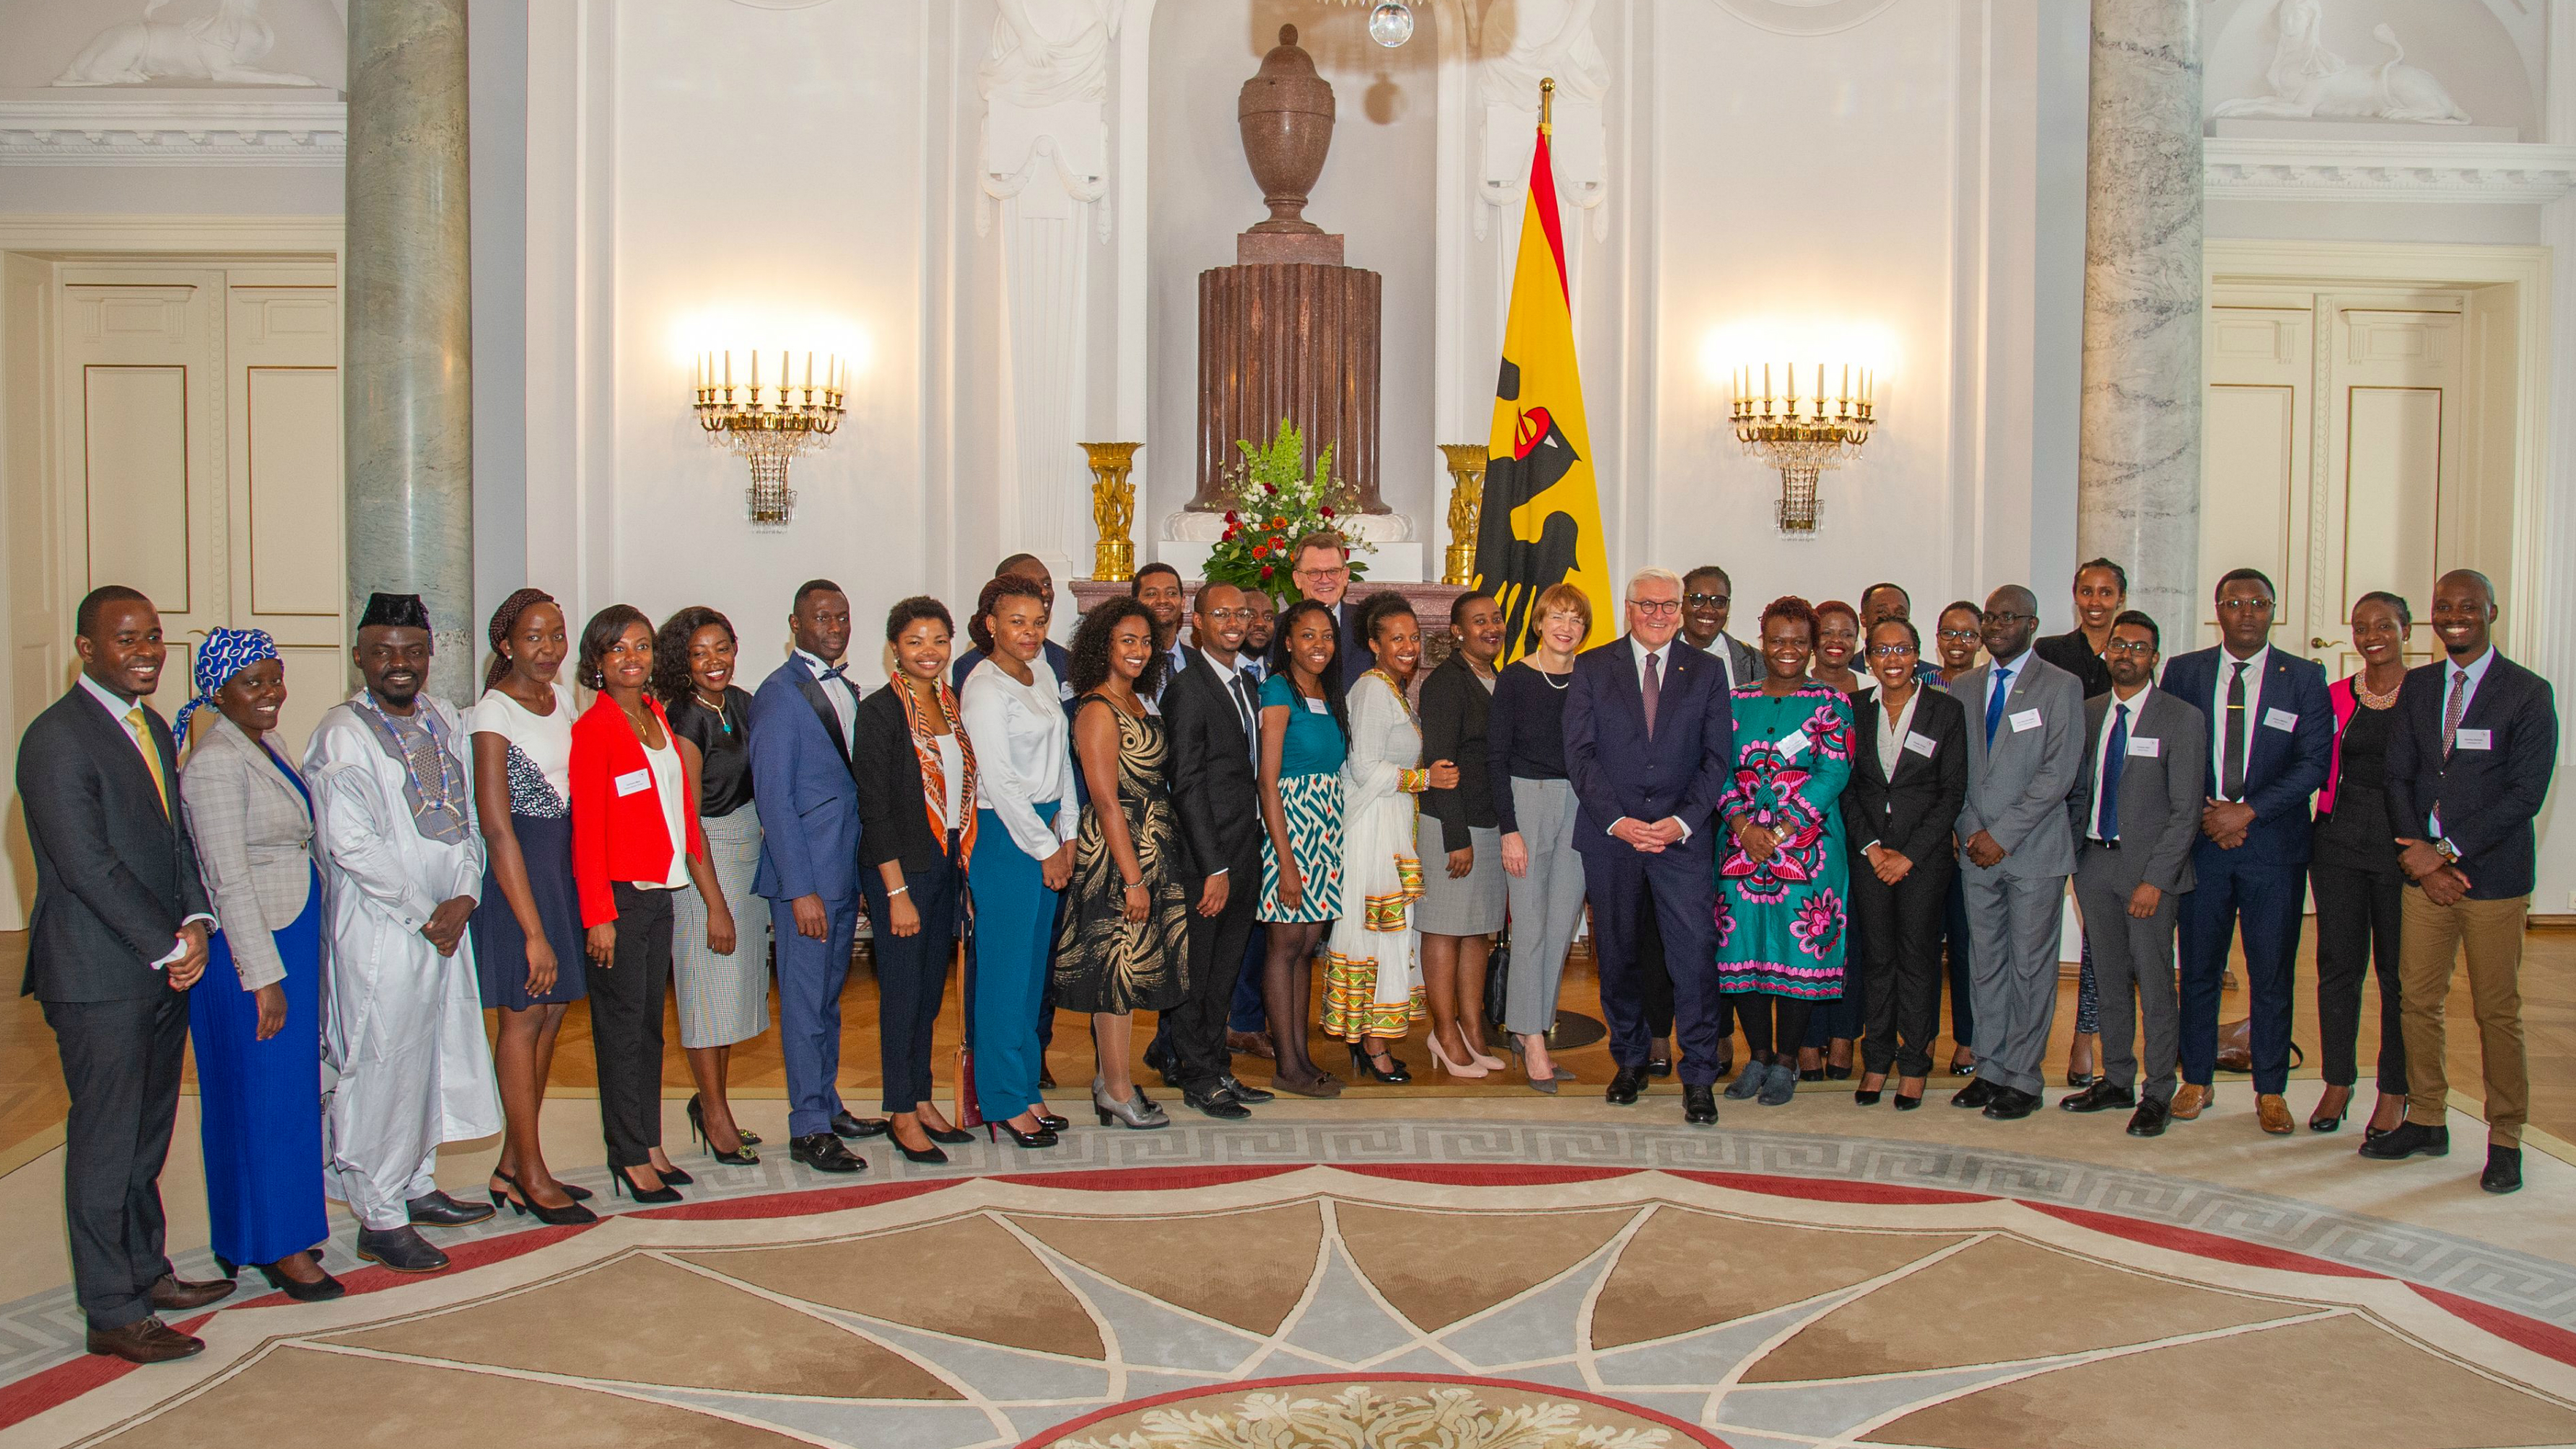 AFRIKA KOMMT! Fellowship Programme 2020-2022 for Future Leaders from Africa (Fully-funded to Germany)